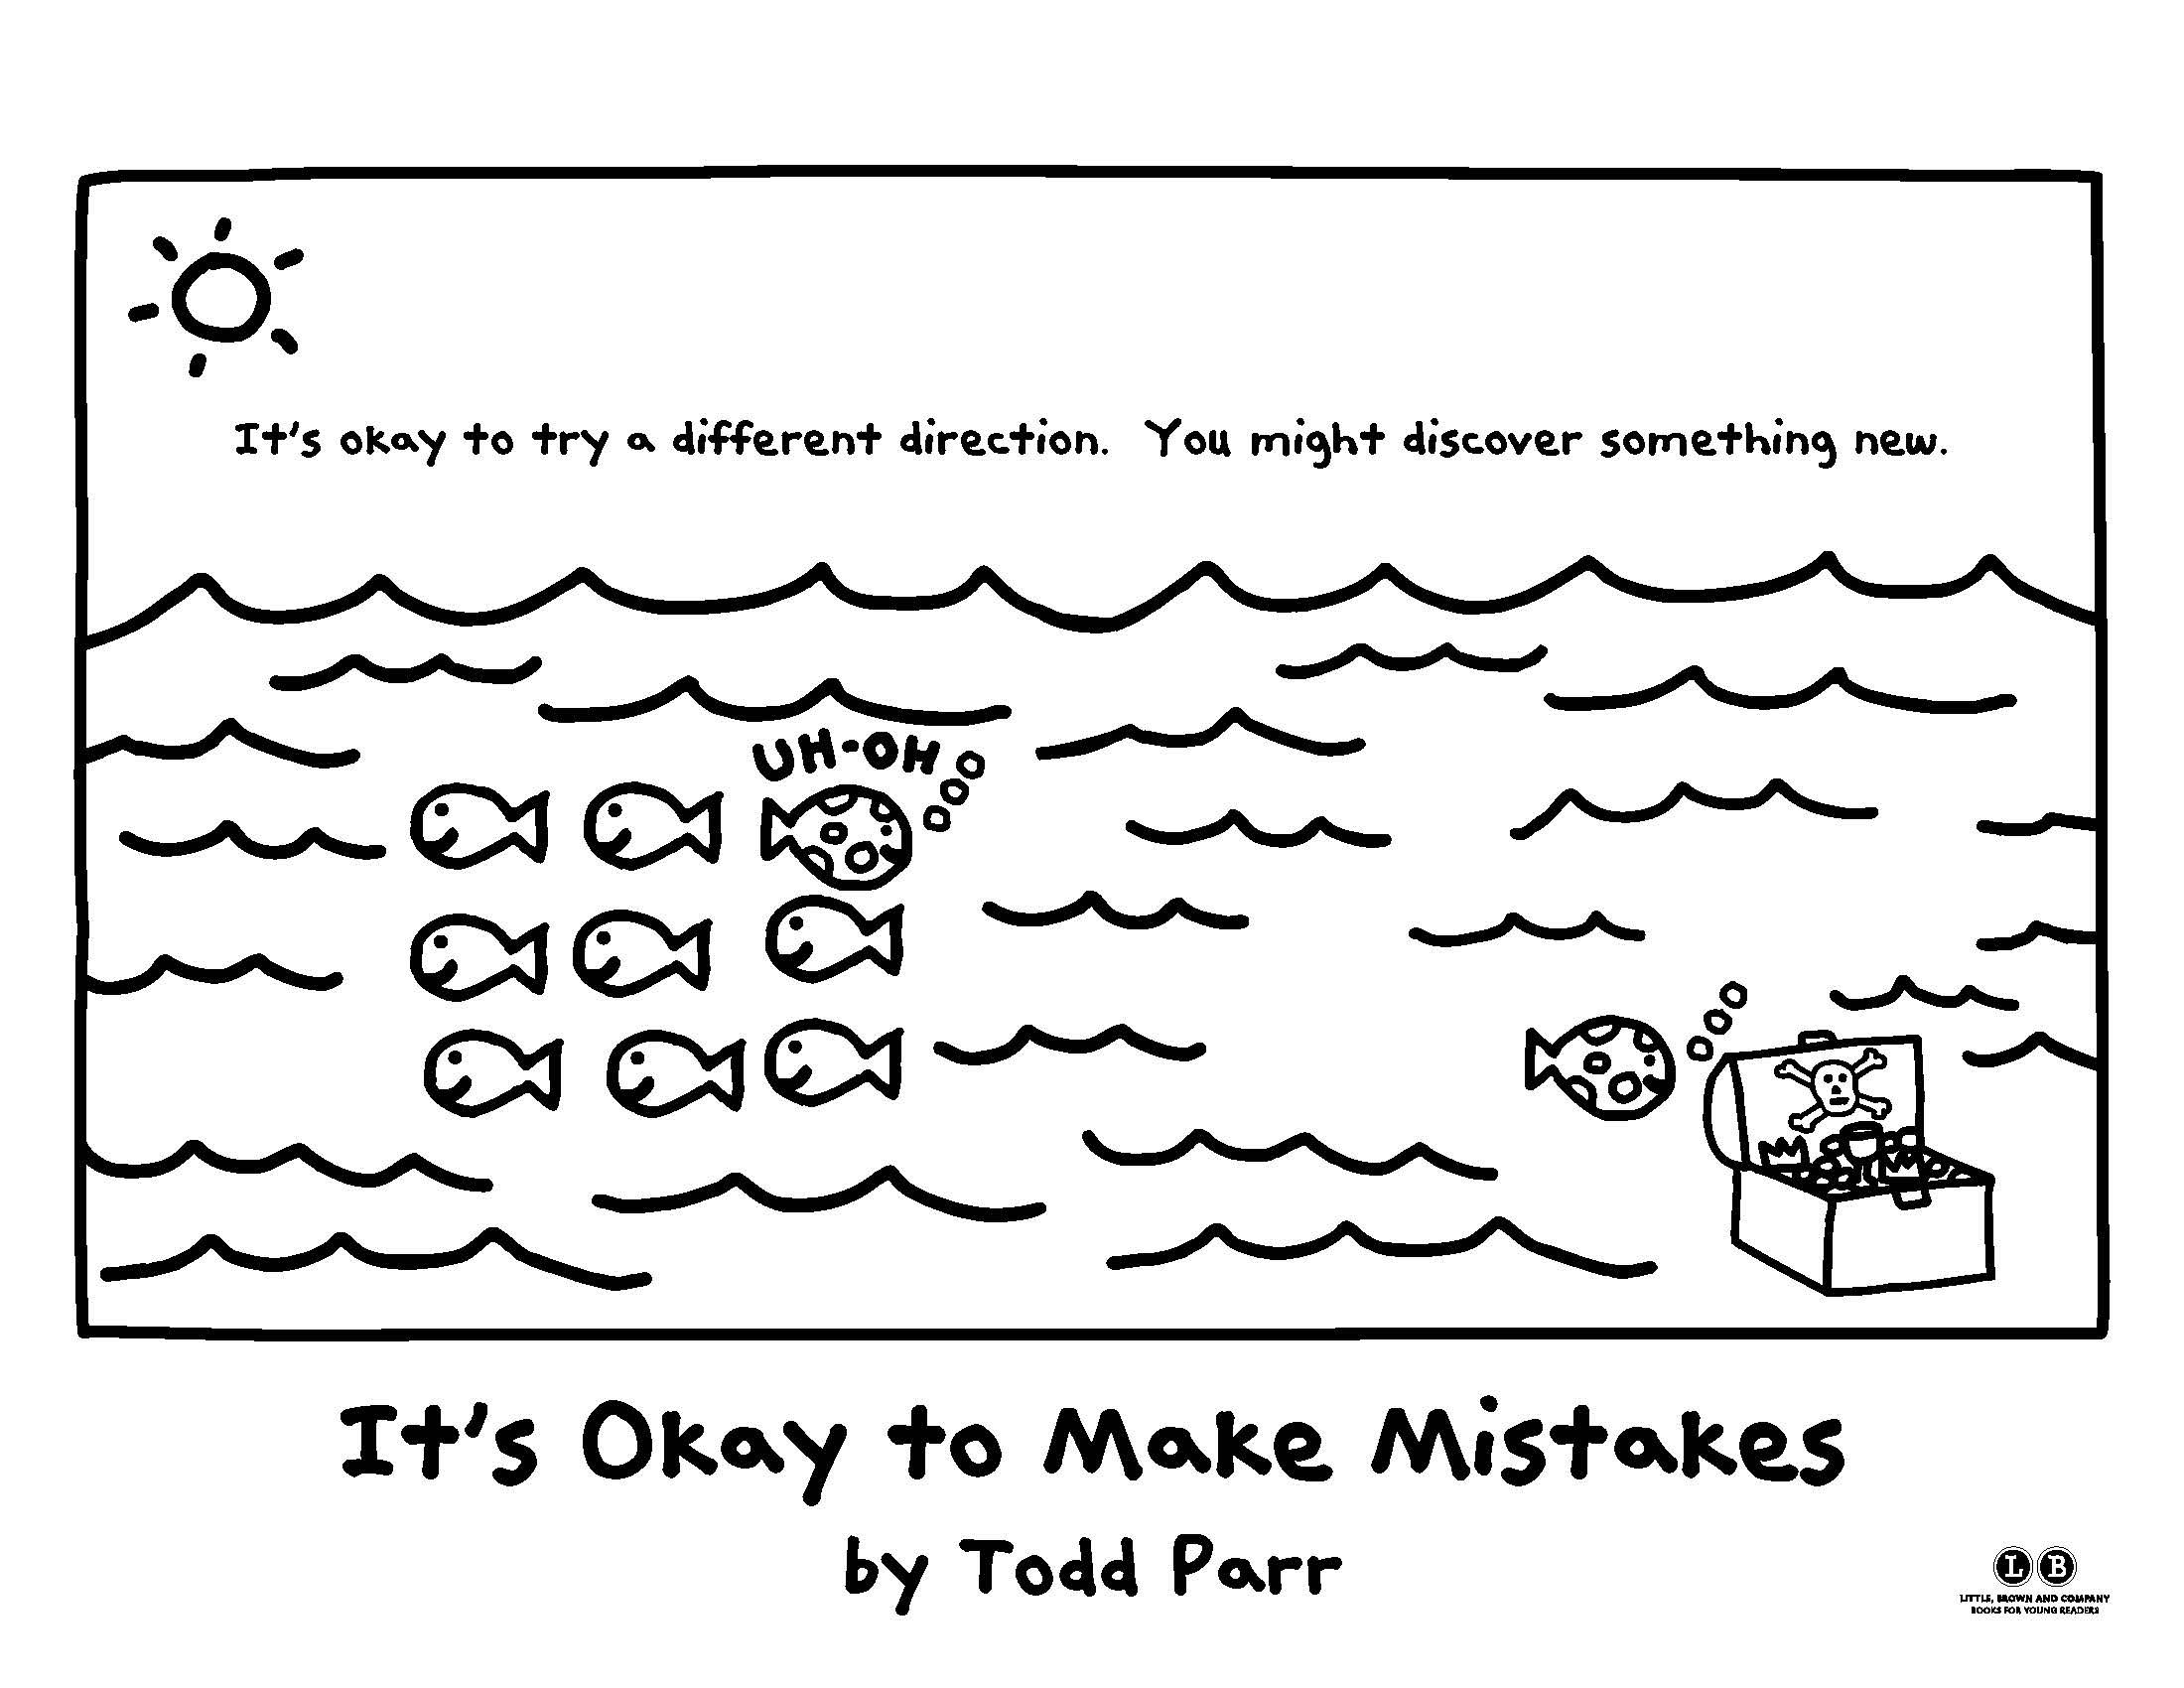 Color in your own direction! [It's Okay to Make Mistakes